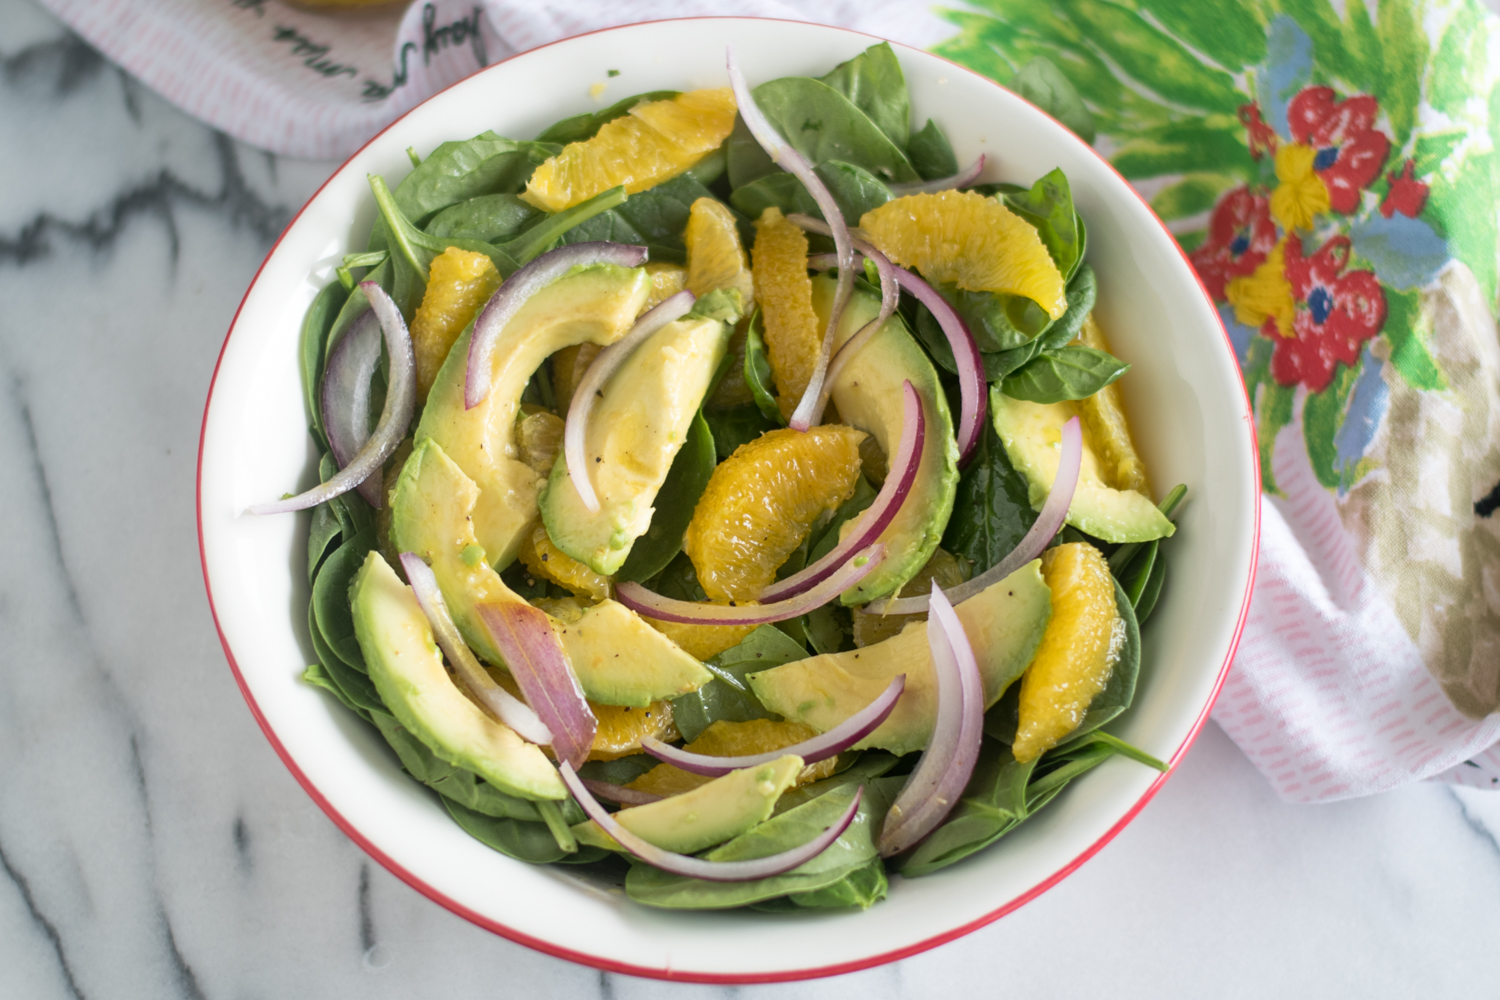 Light, refreshing Spinach Orange and Avocado Salad with a Guava Dressing. #vegan #salad #healthy